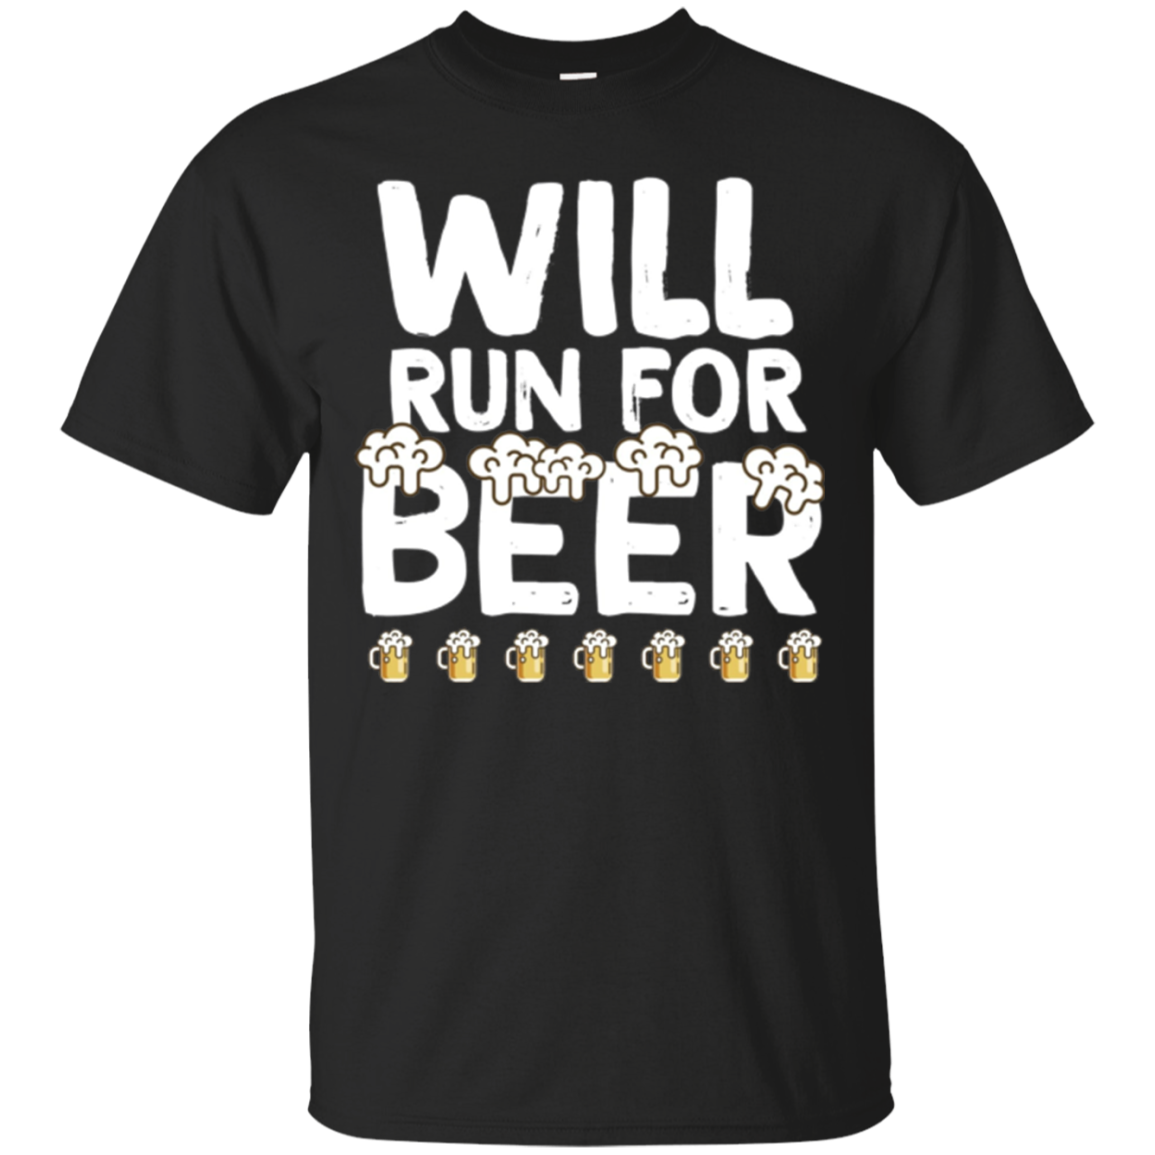 Funny Drinking Shirt, Run for Beer Long Sleeve Tshirt Gift